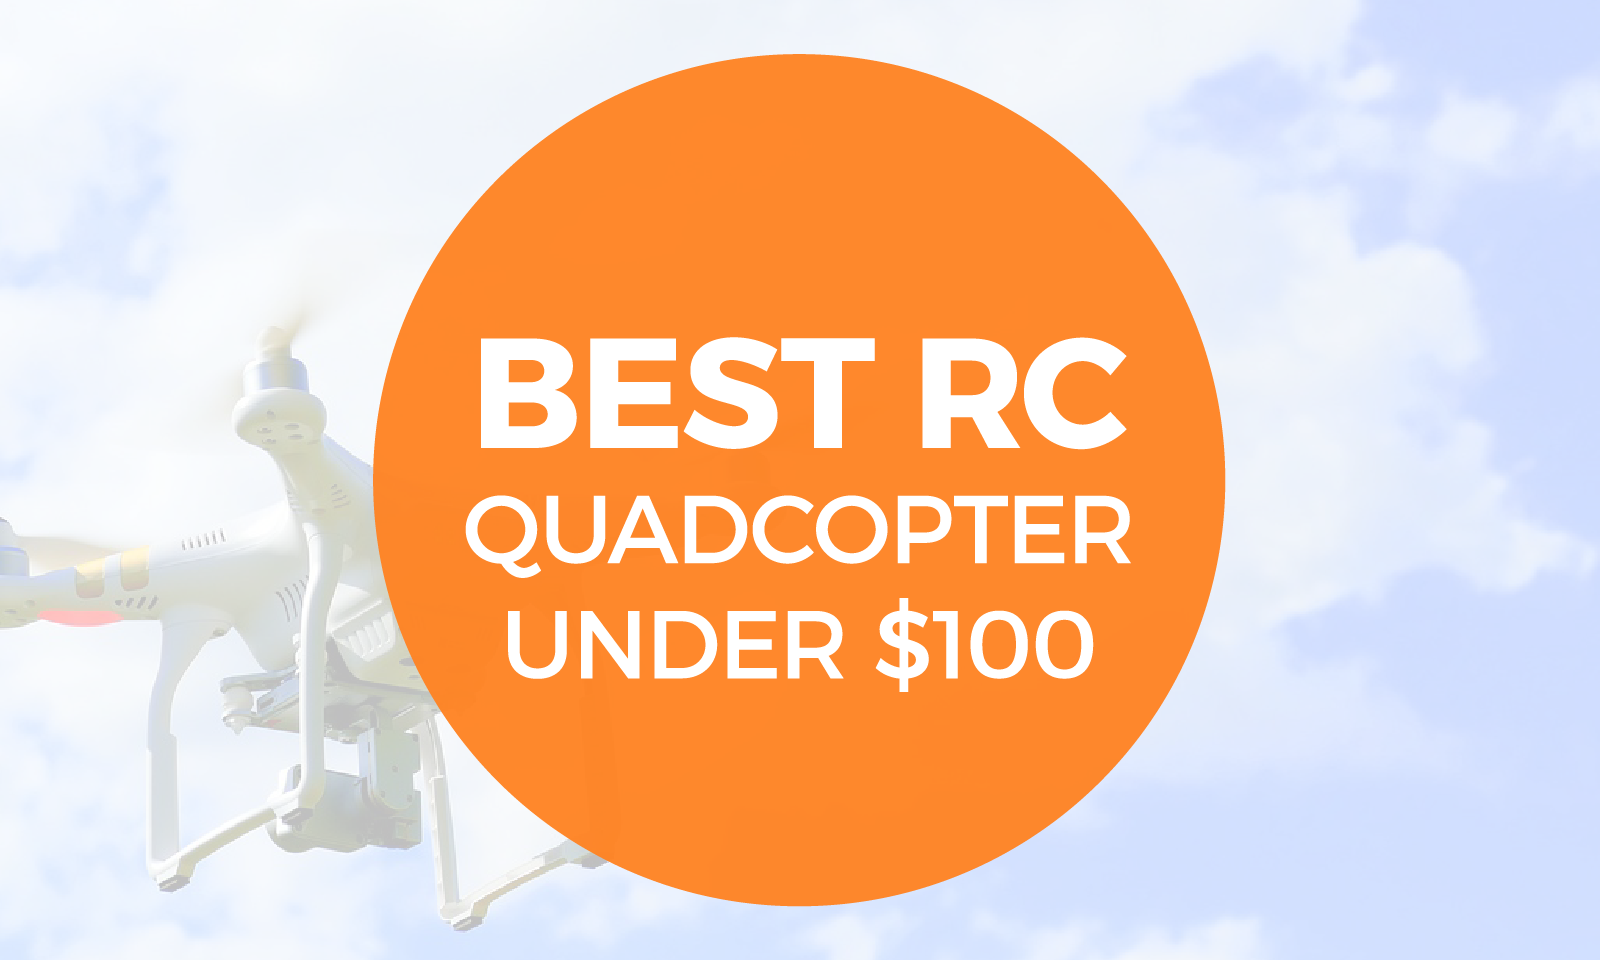 Best RC Quadcopter Under $100 Post Header